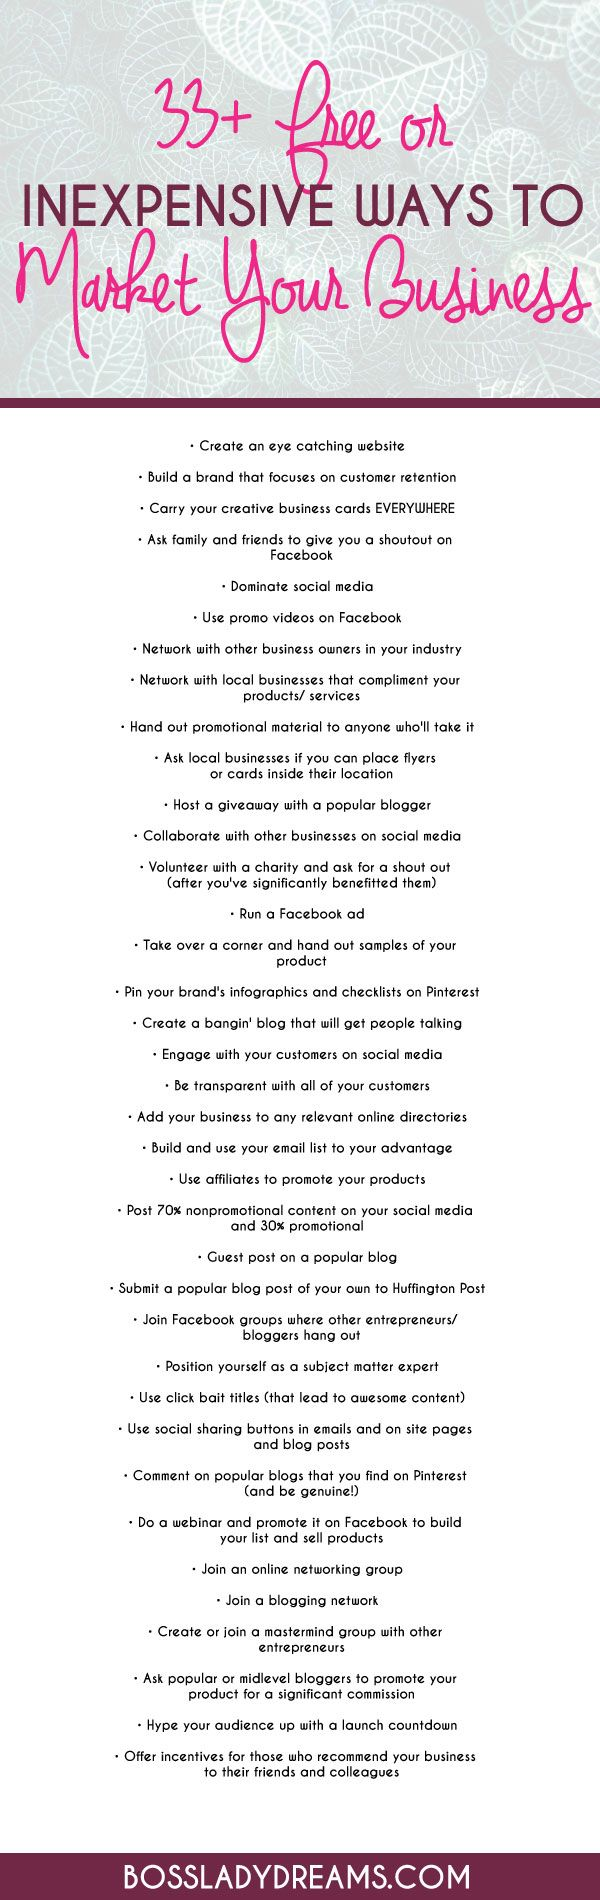 33+ Free or Inexpensive Ways to Market Your Business Today Start up entrepreneurs never have as much money as they'd like to have in the bank. I mean, really, it's every entrepreneurs dream to build a business and then magically have people flock to it. Unfortunately, this couldn't be further from the truth. So you've gotta